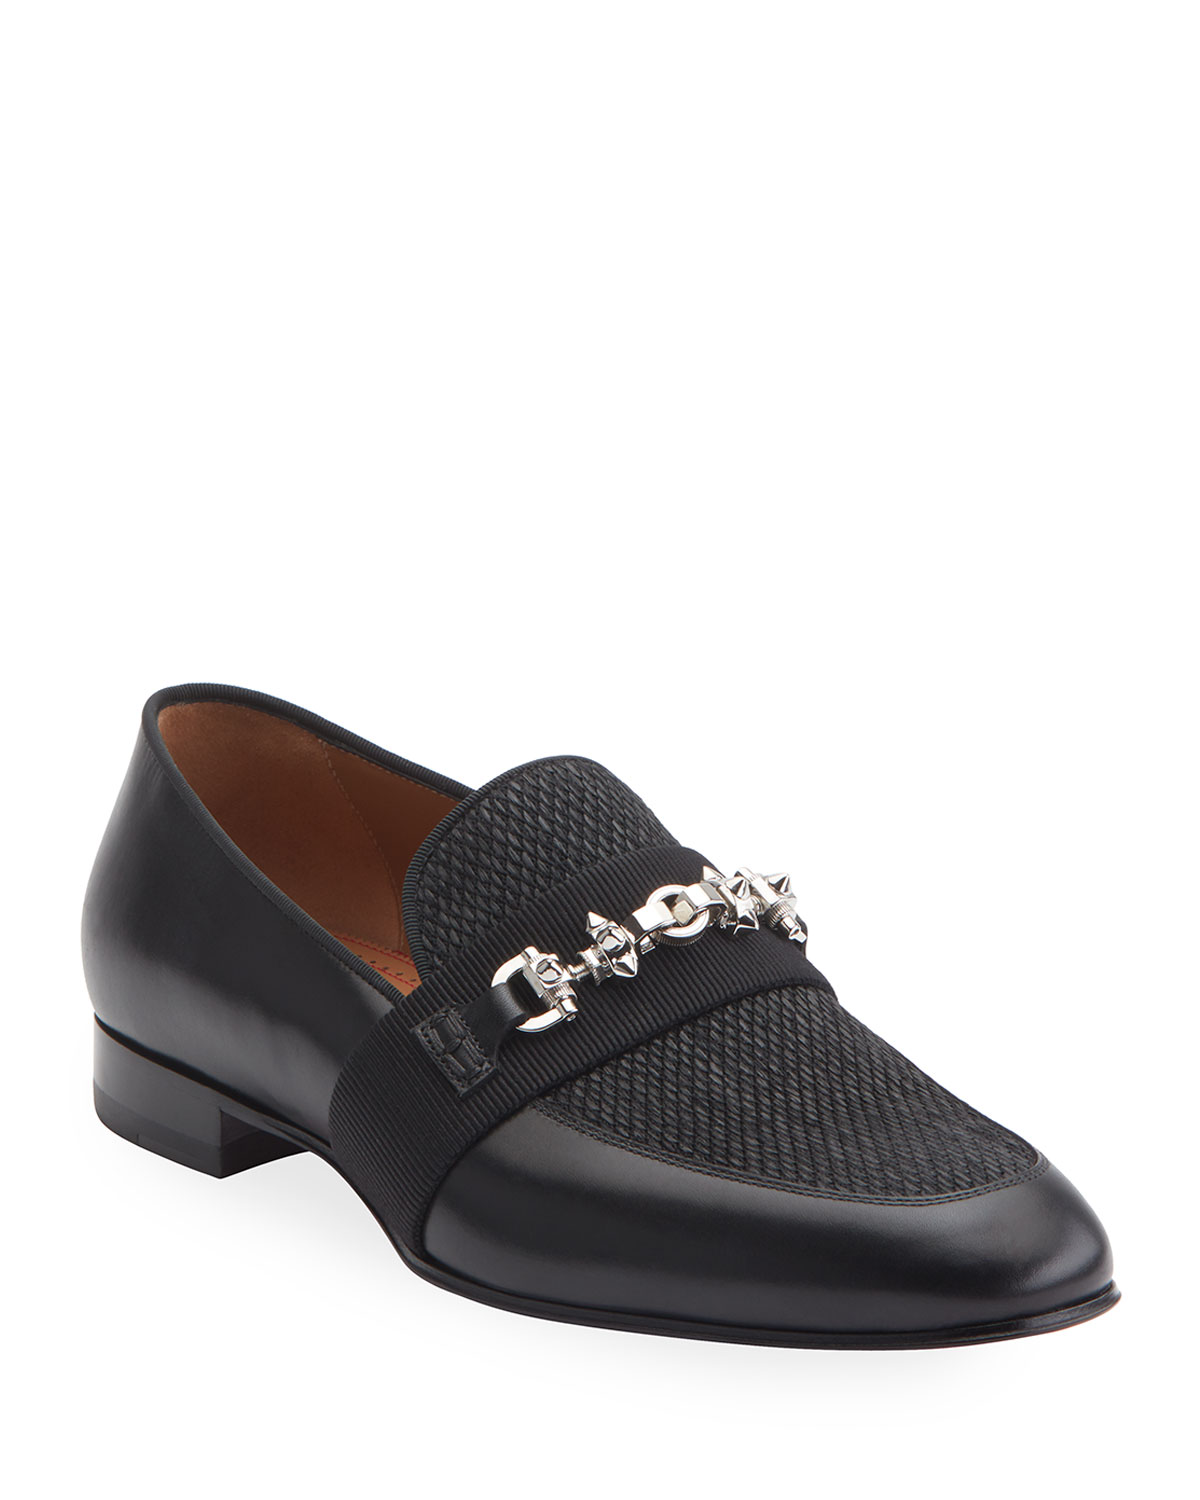 Panamax Spiked Leather/Fabric Loafers